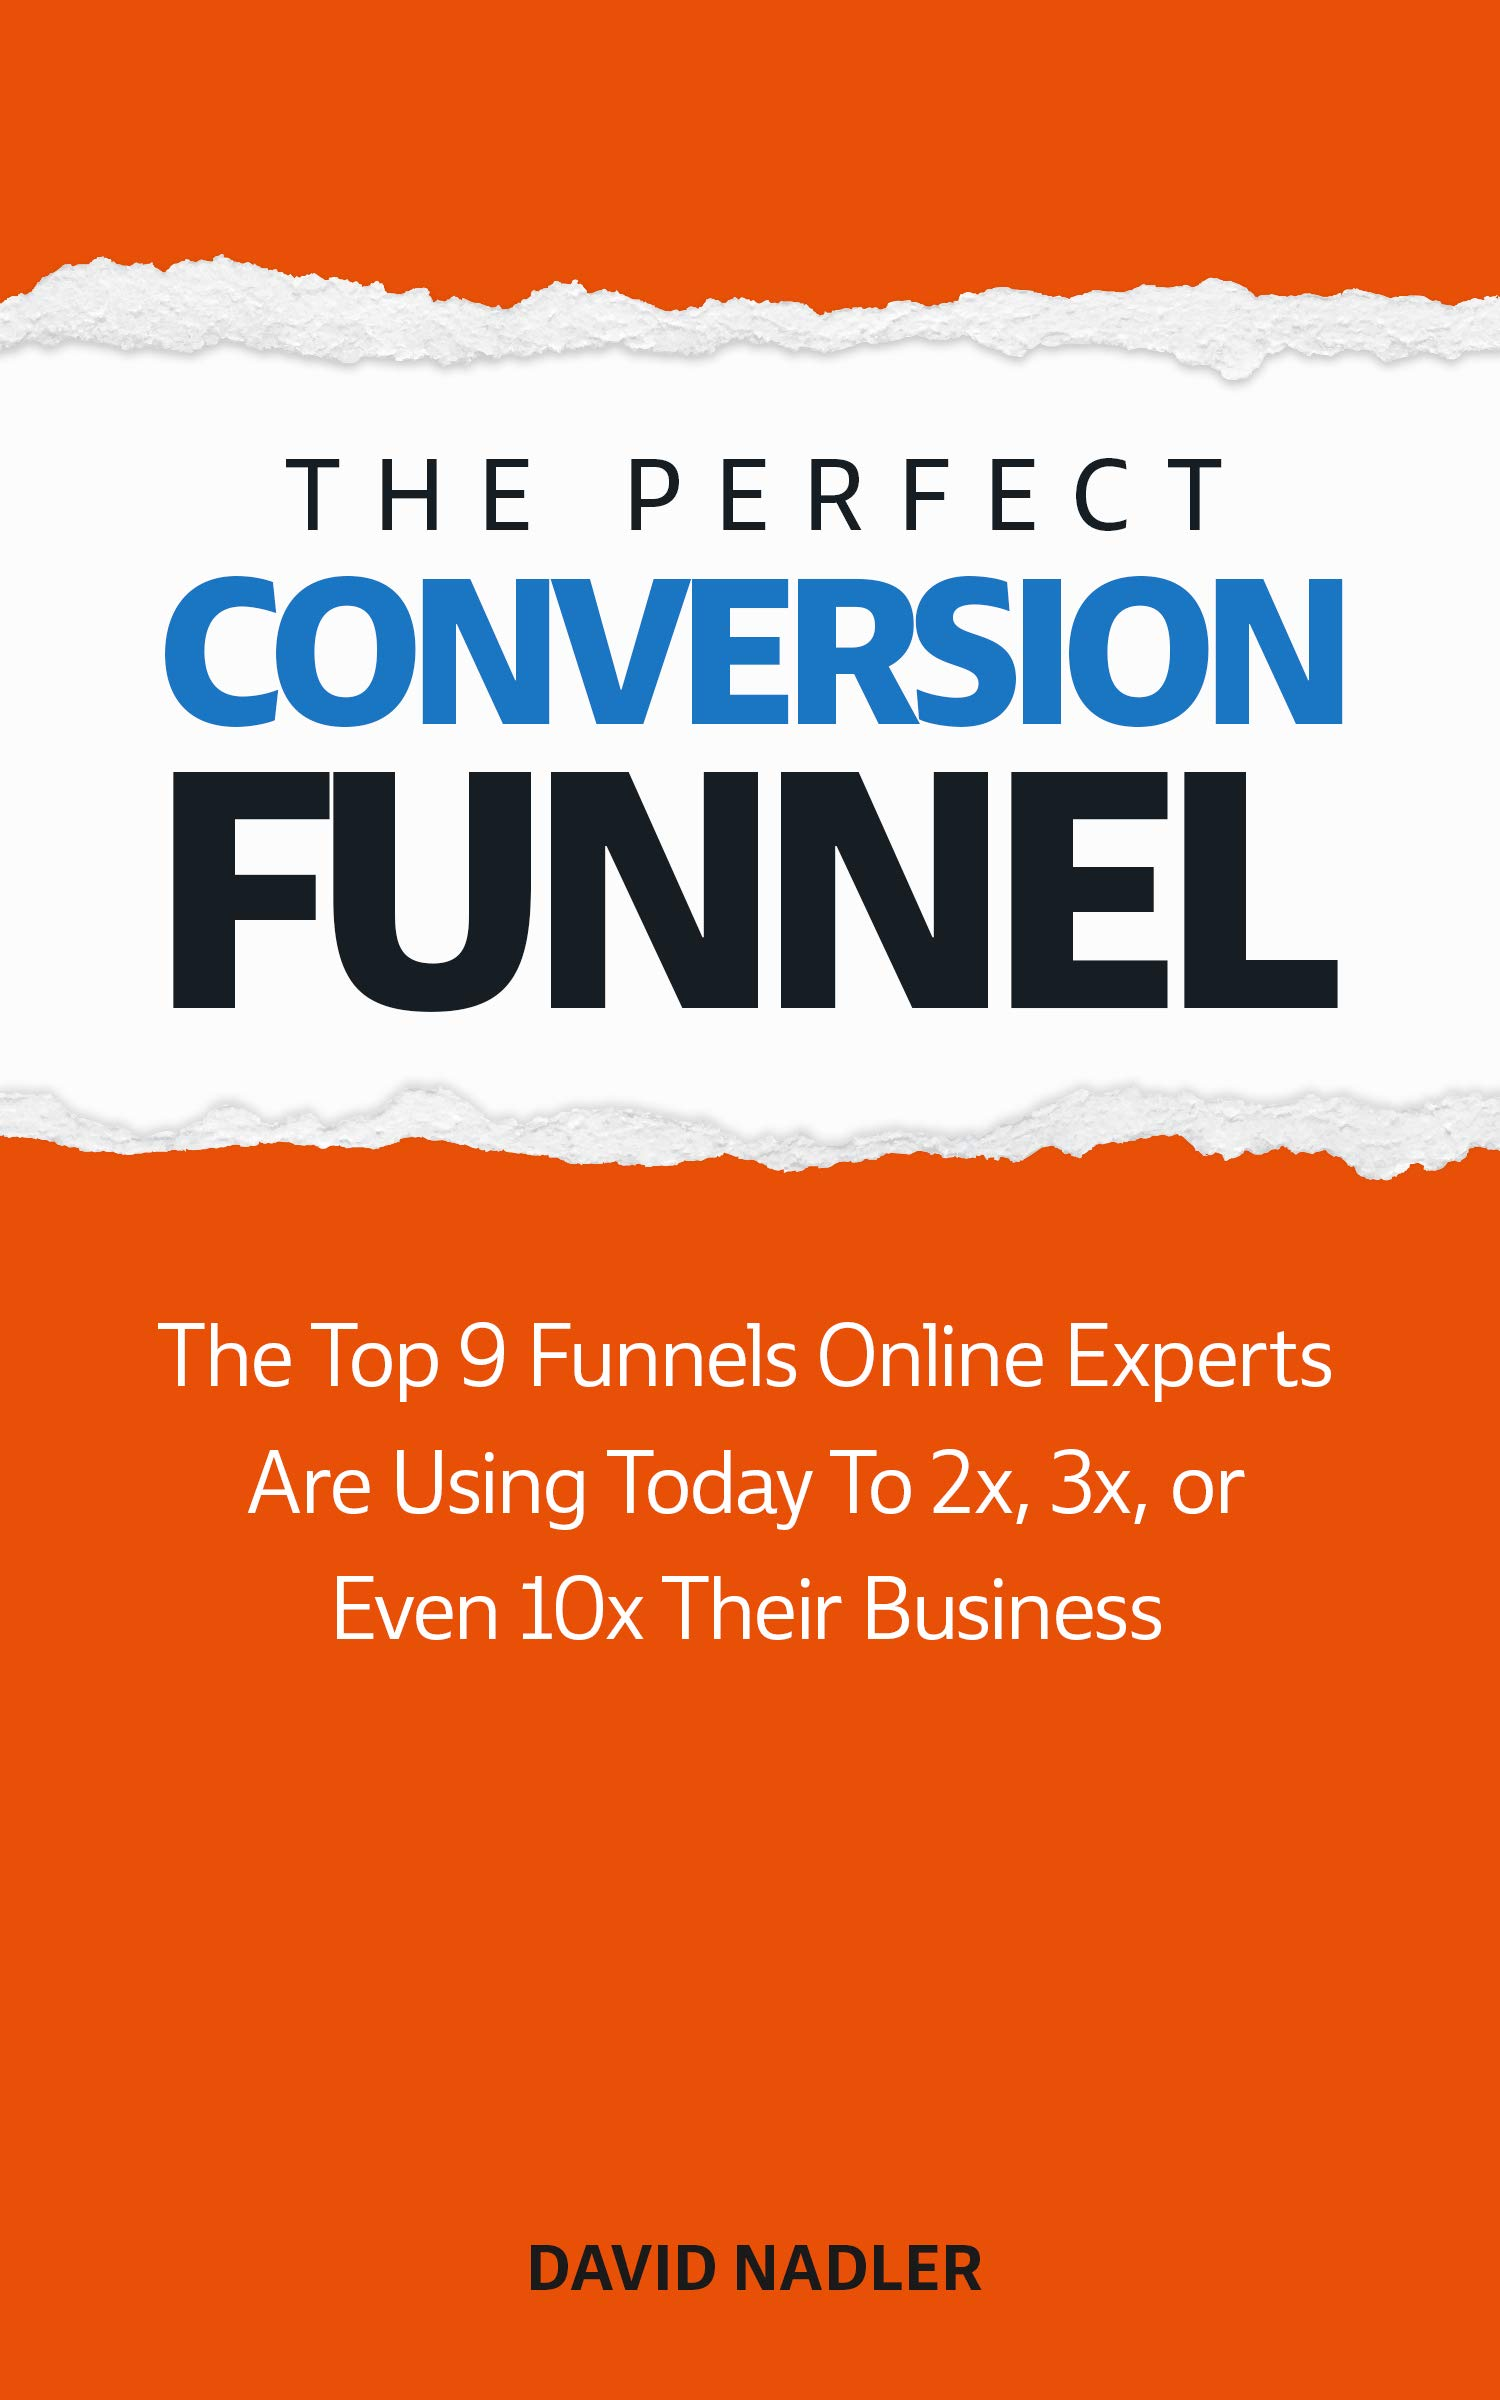 The Perfect Conversion Funnel: The Top 9 Funnels Online Experts are Using Today to 2x, 3x, or Even 10x Their Business